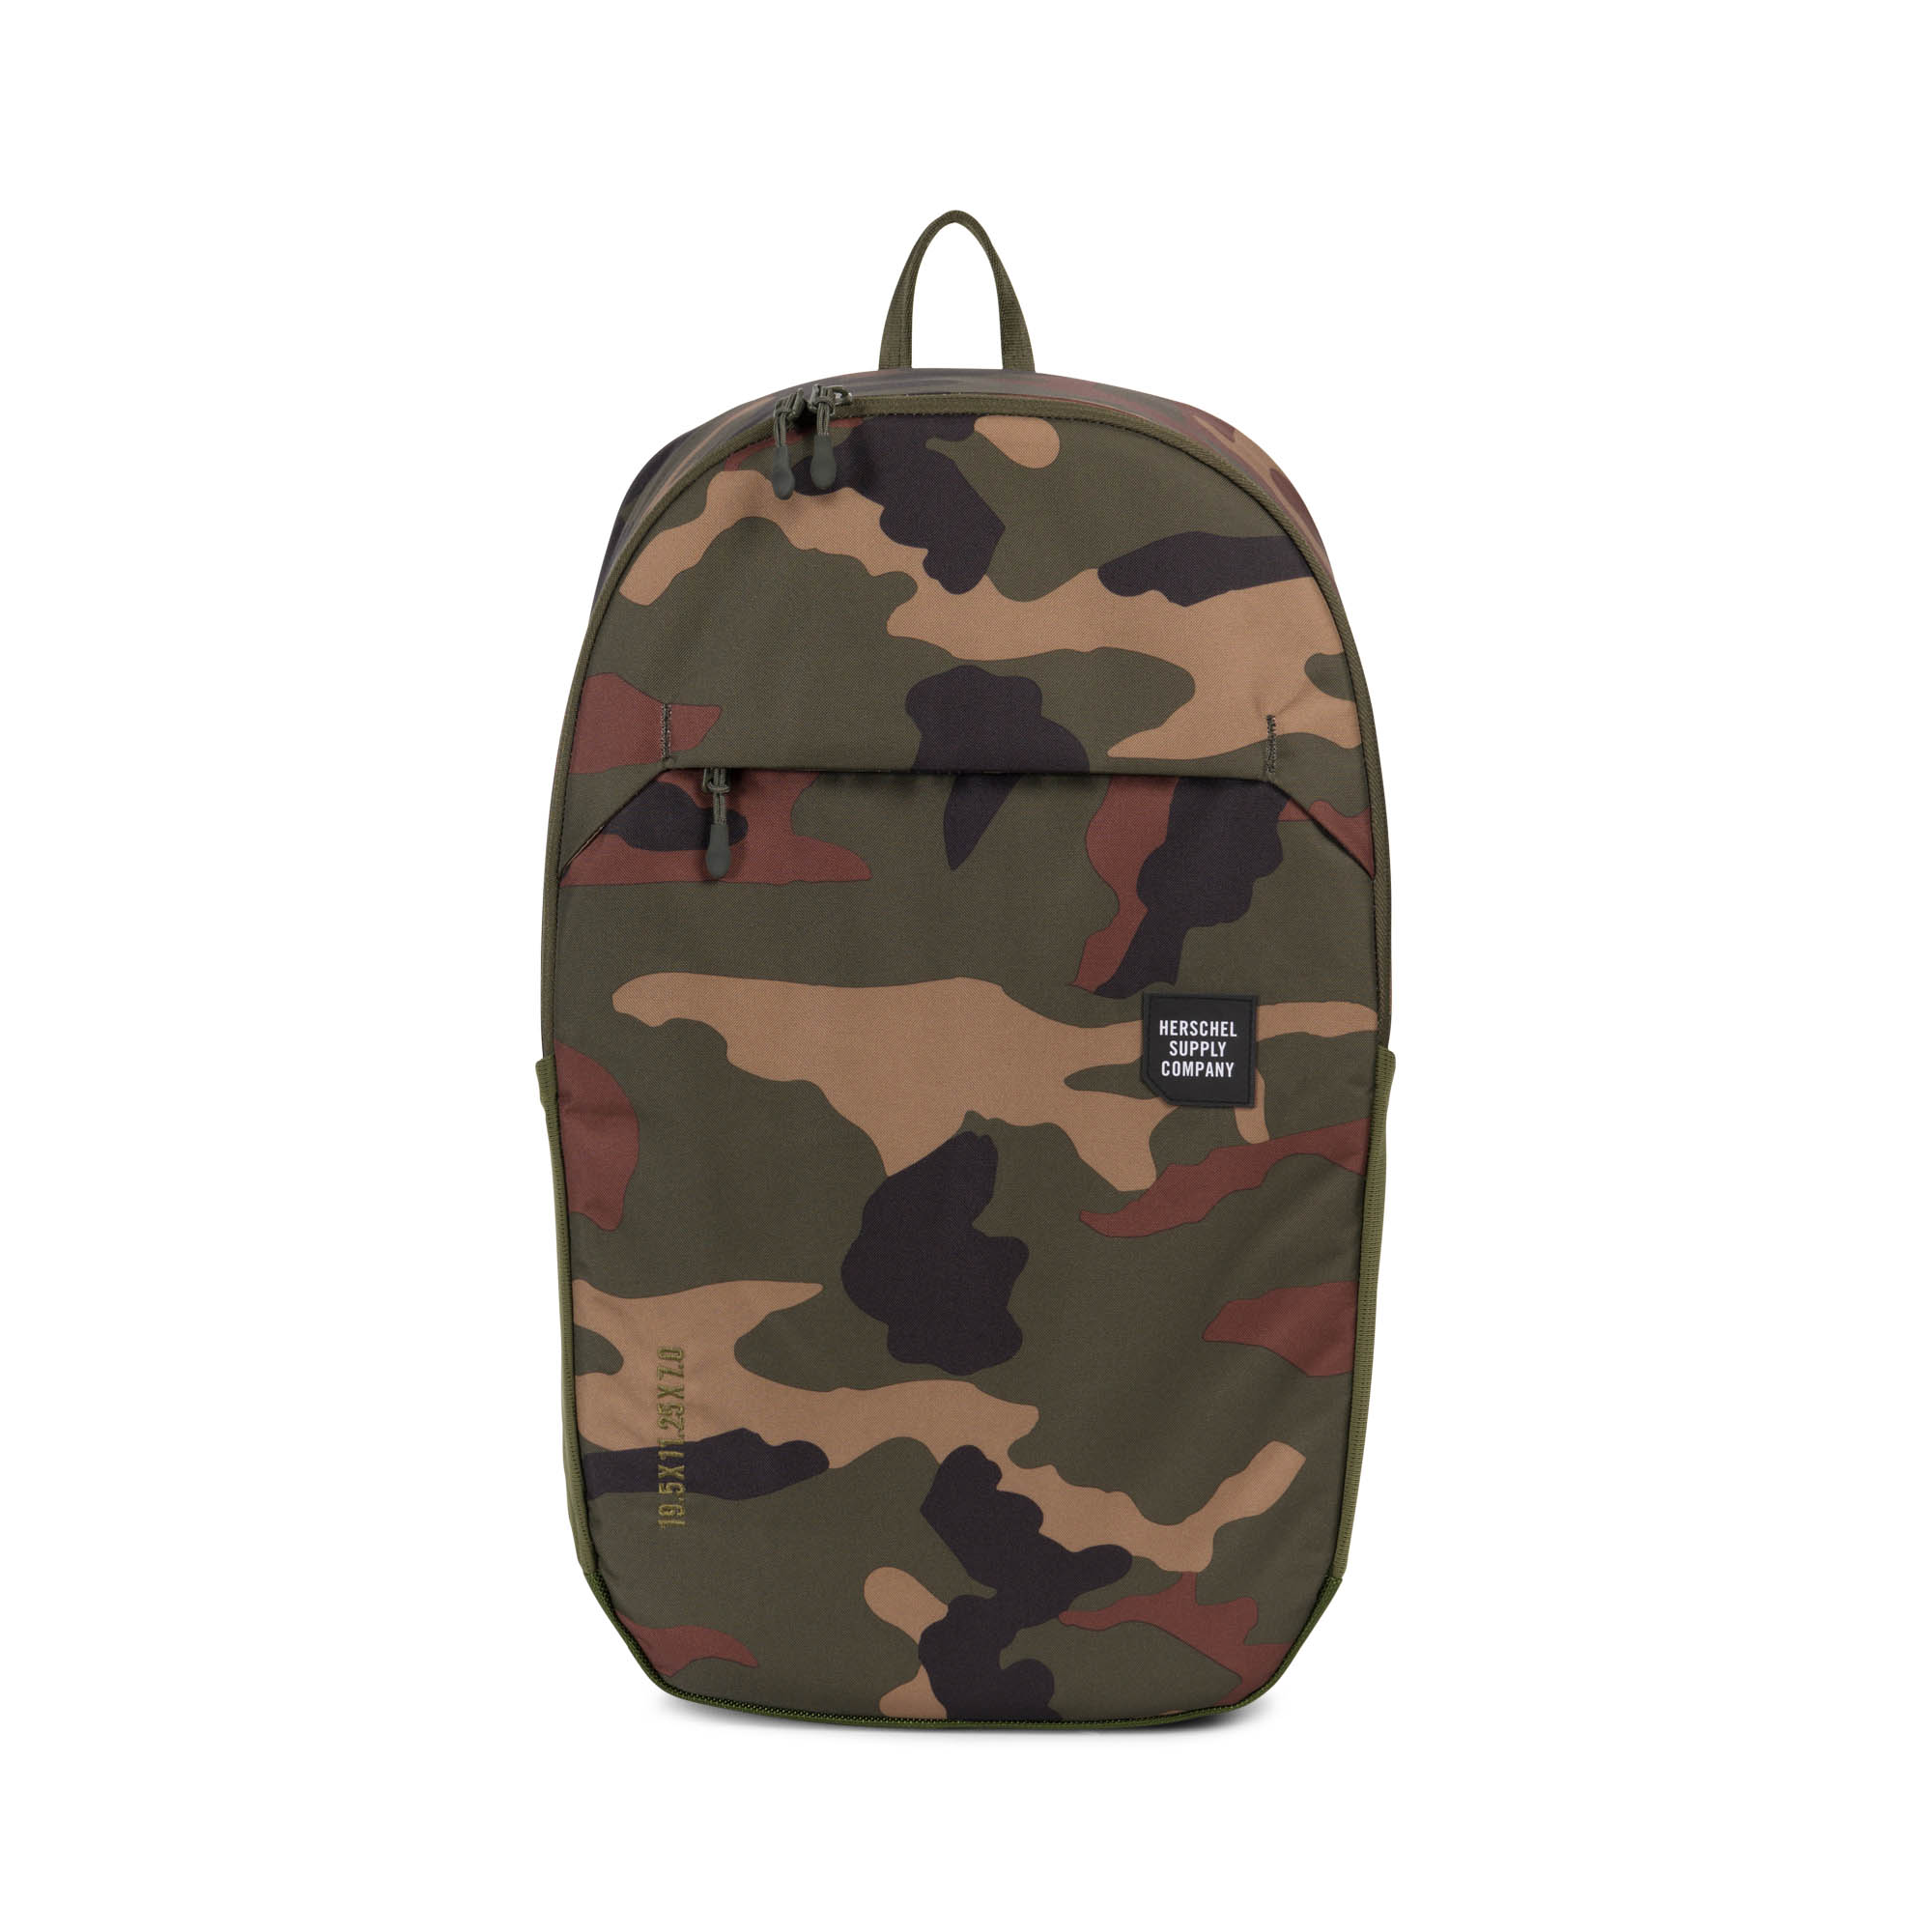 0bc2d084157 Mammoth Backpack Large